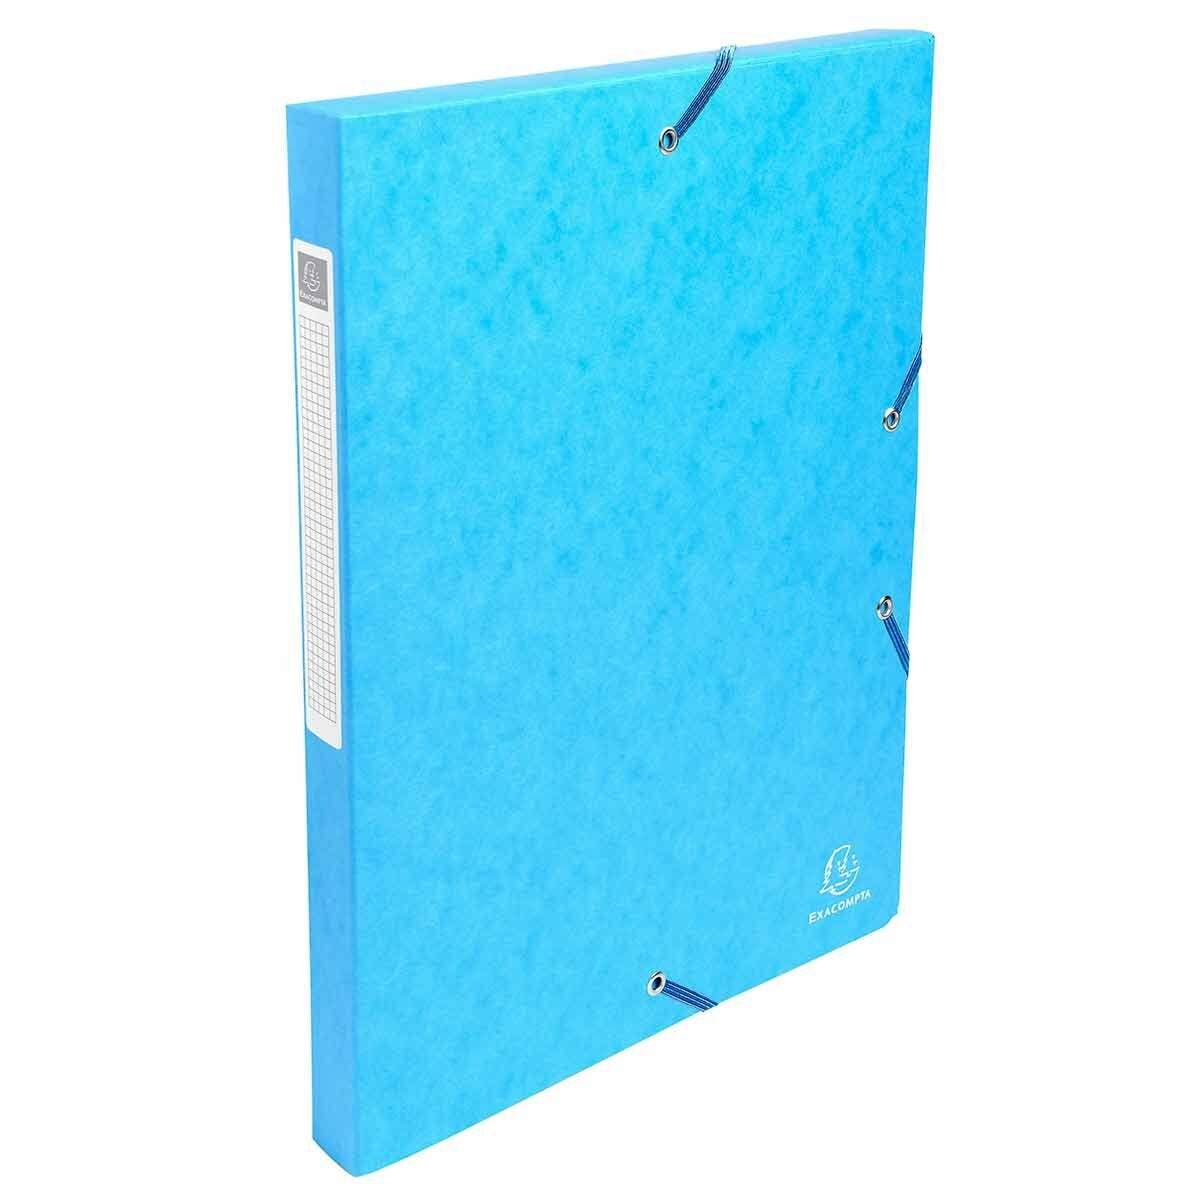 Exacompta Elasticated Box File Pressboard A4 25mm Pack of 8 Turquoise